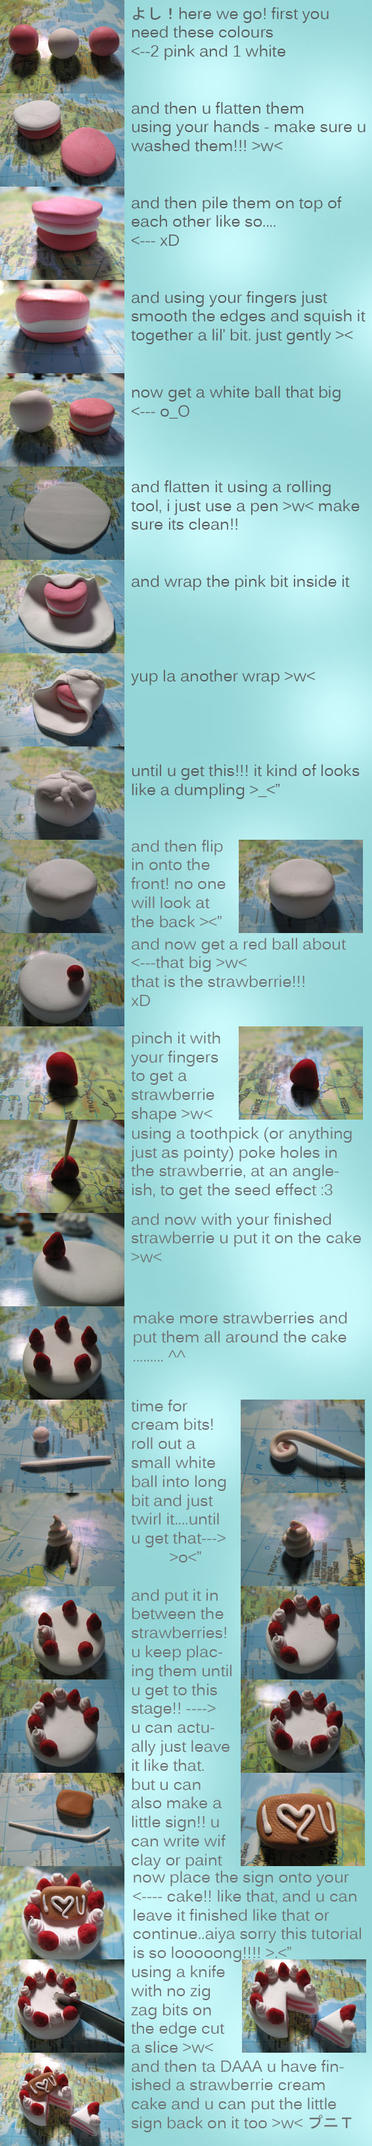 Strawberry Cake charm Tutorial by PuniTotoro